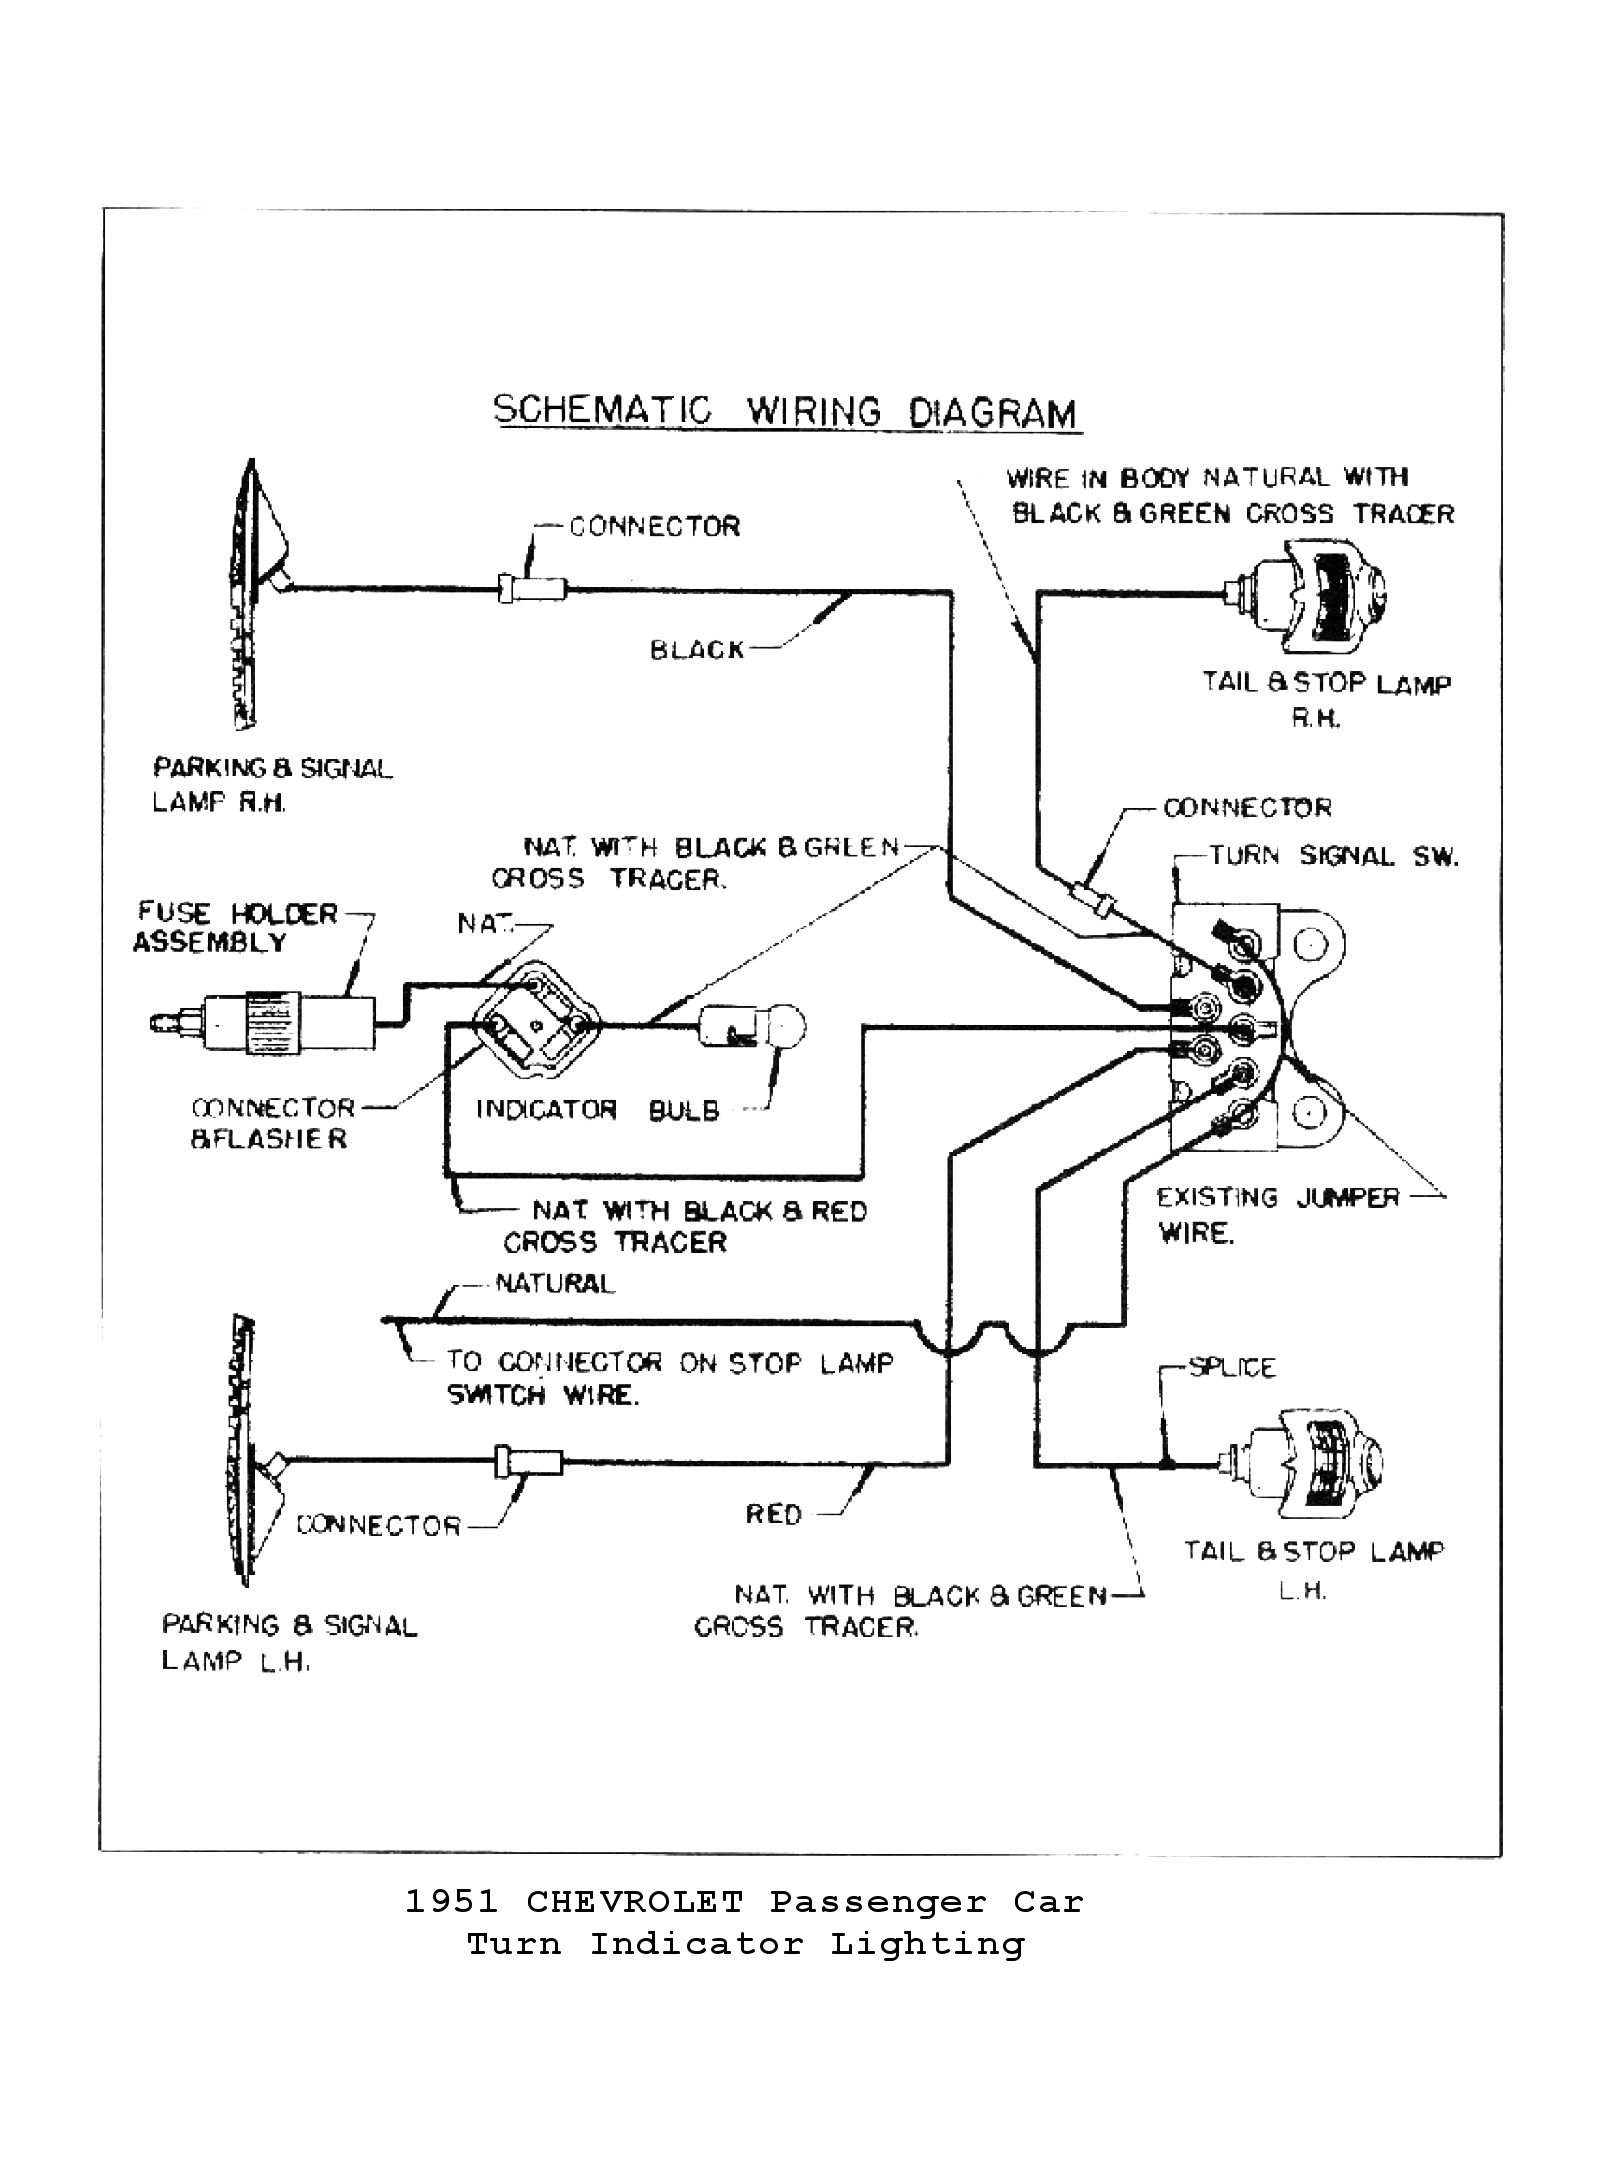 Neutral Safety Switch Wiring Diagram 1979 Plymouth Not Lossing Dodge Turn Signal 1955 Chevrolet Detailed Rh 7 4 Ocotillo Paysage Com 4l80e